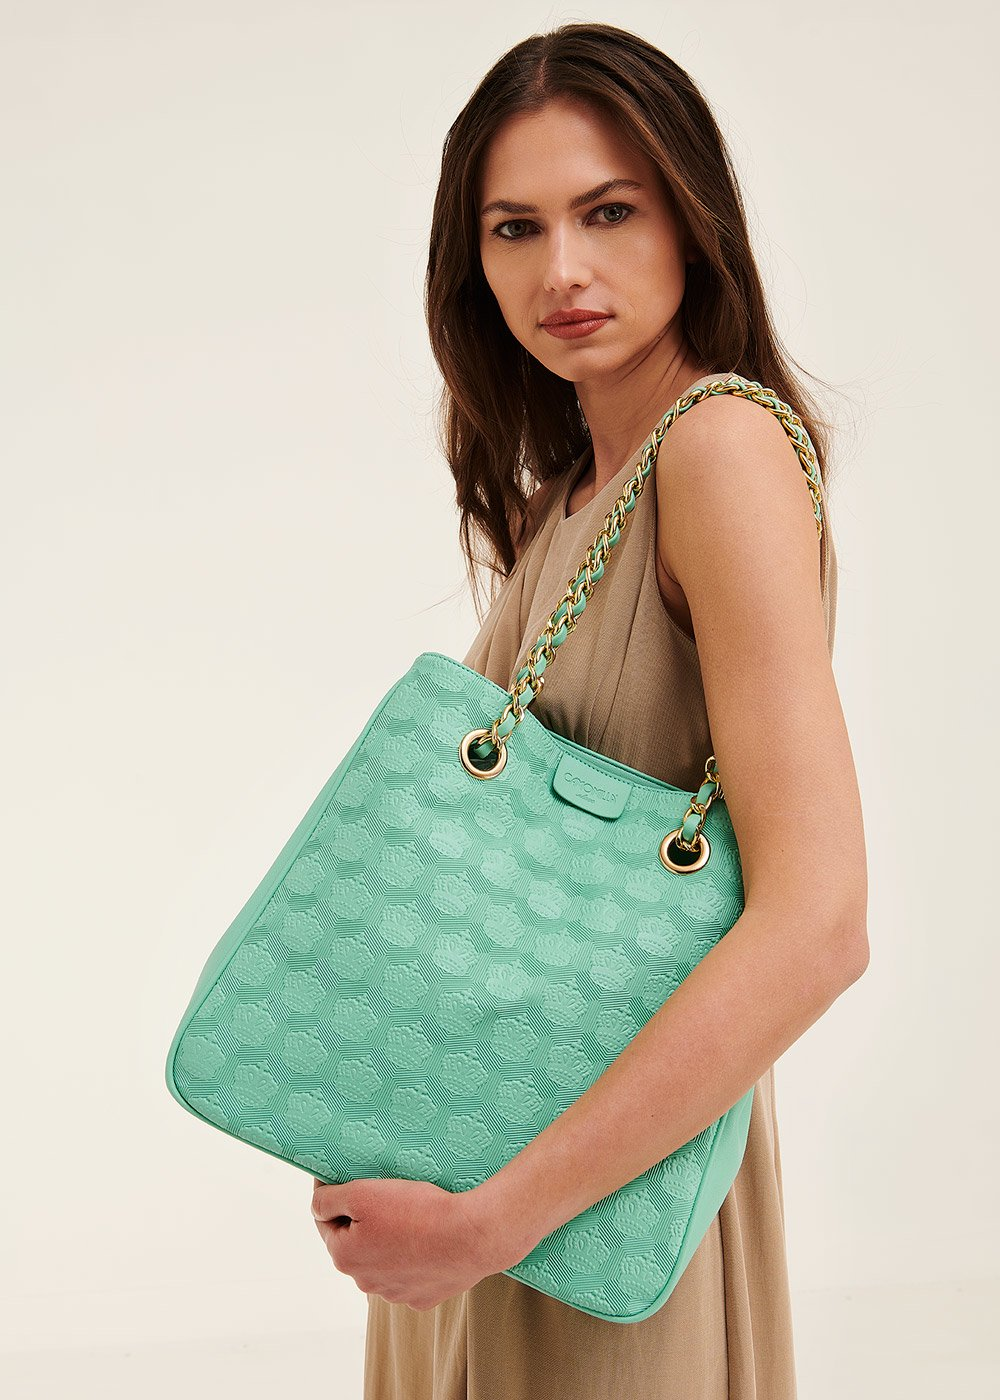 Bagsy shopping bag with embossed crowns - Smeraldo - Woman